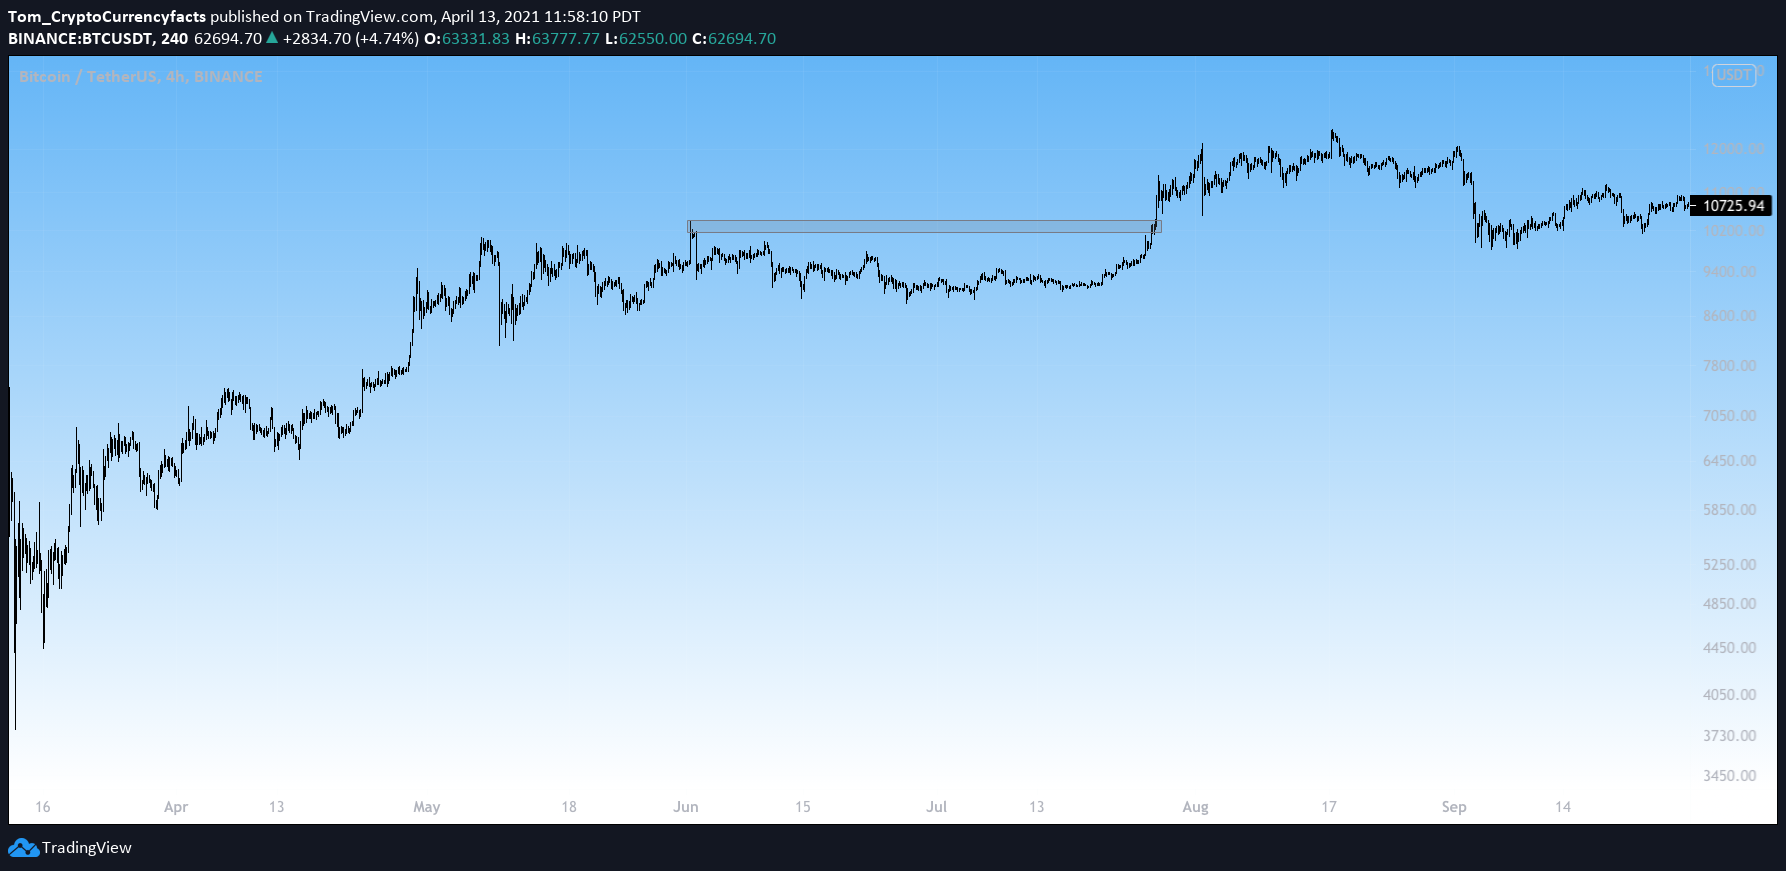 Bitcoin fails to make new highs in the summer of 2020.